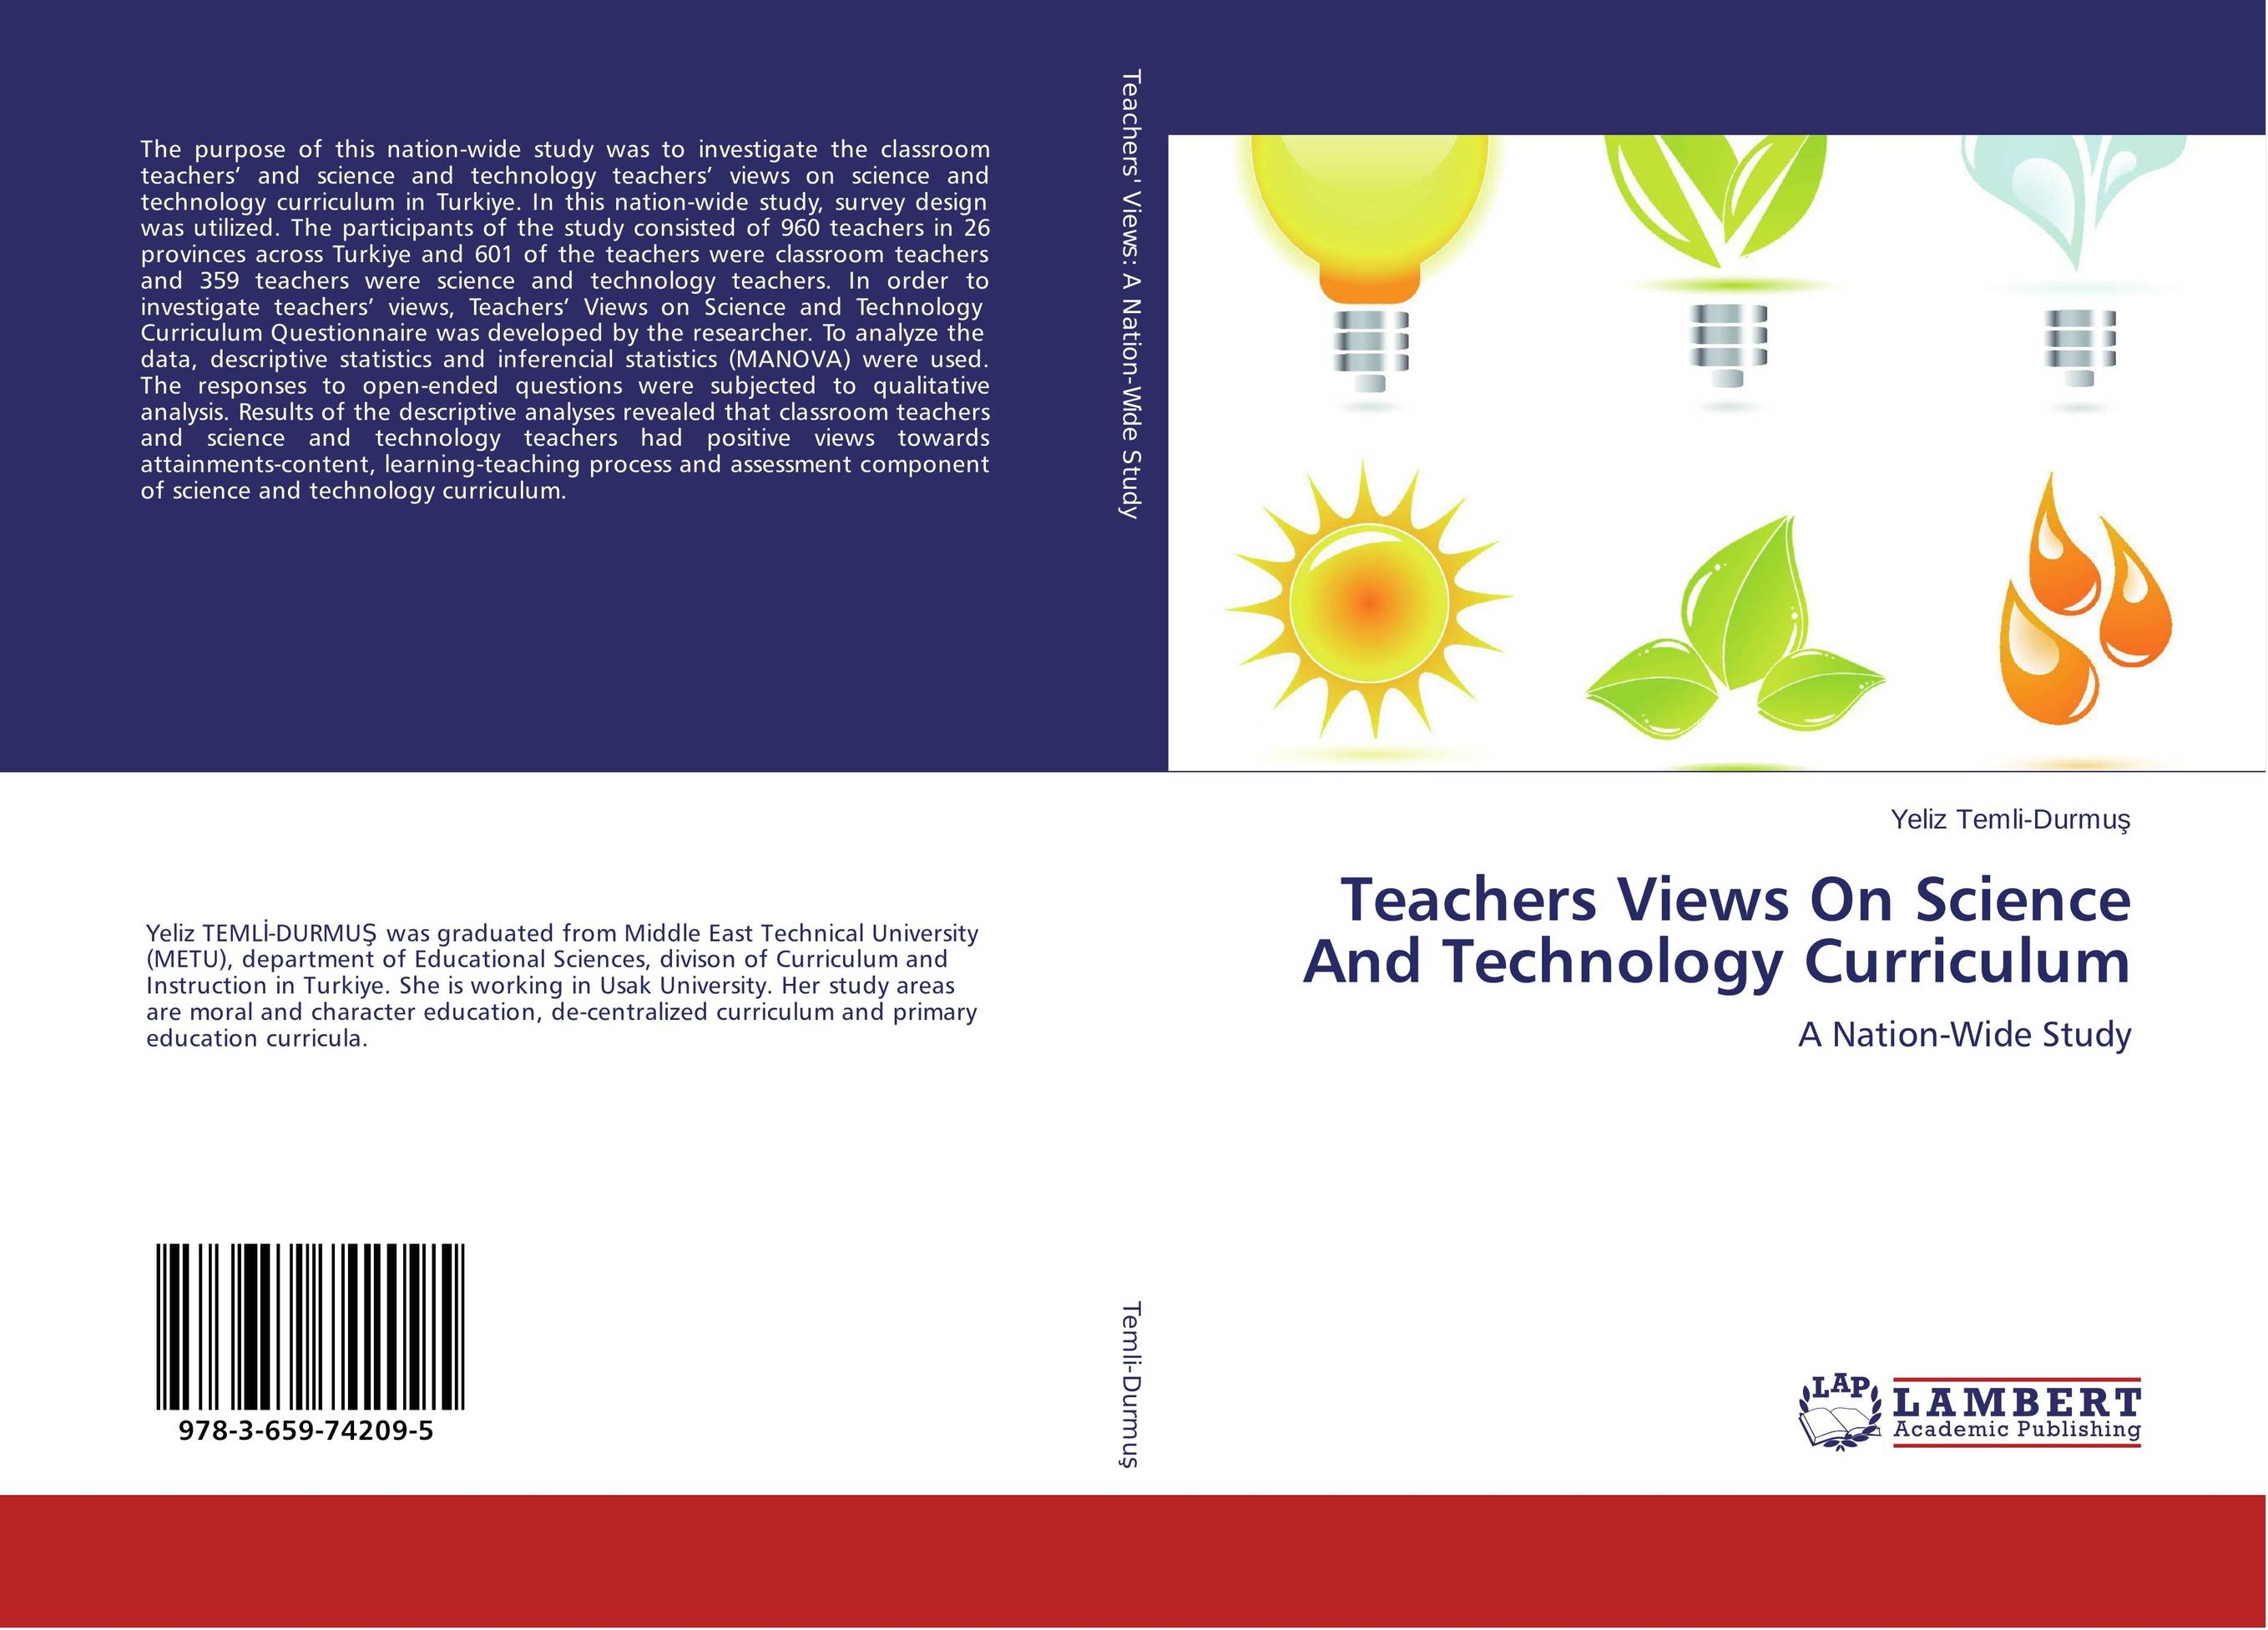 Teachers Views On Science And Technology Curriculum voluntary associations in tsarist russia – science patriotism and civil society